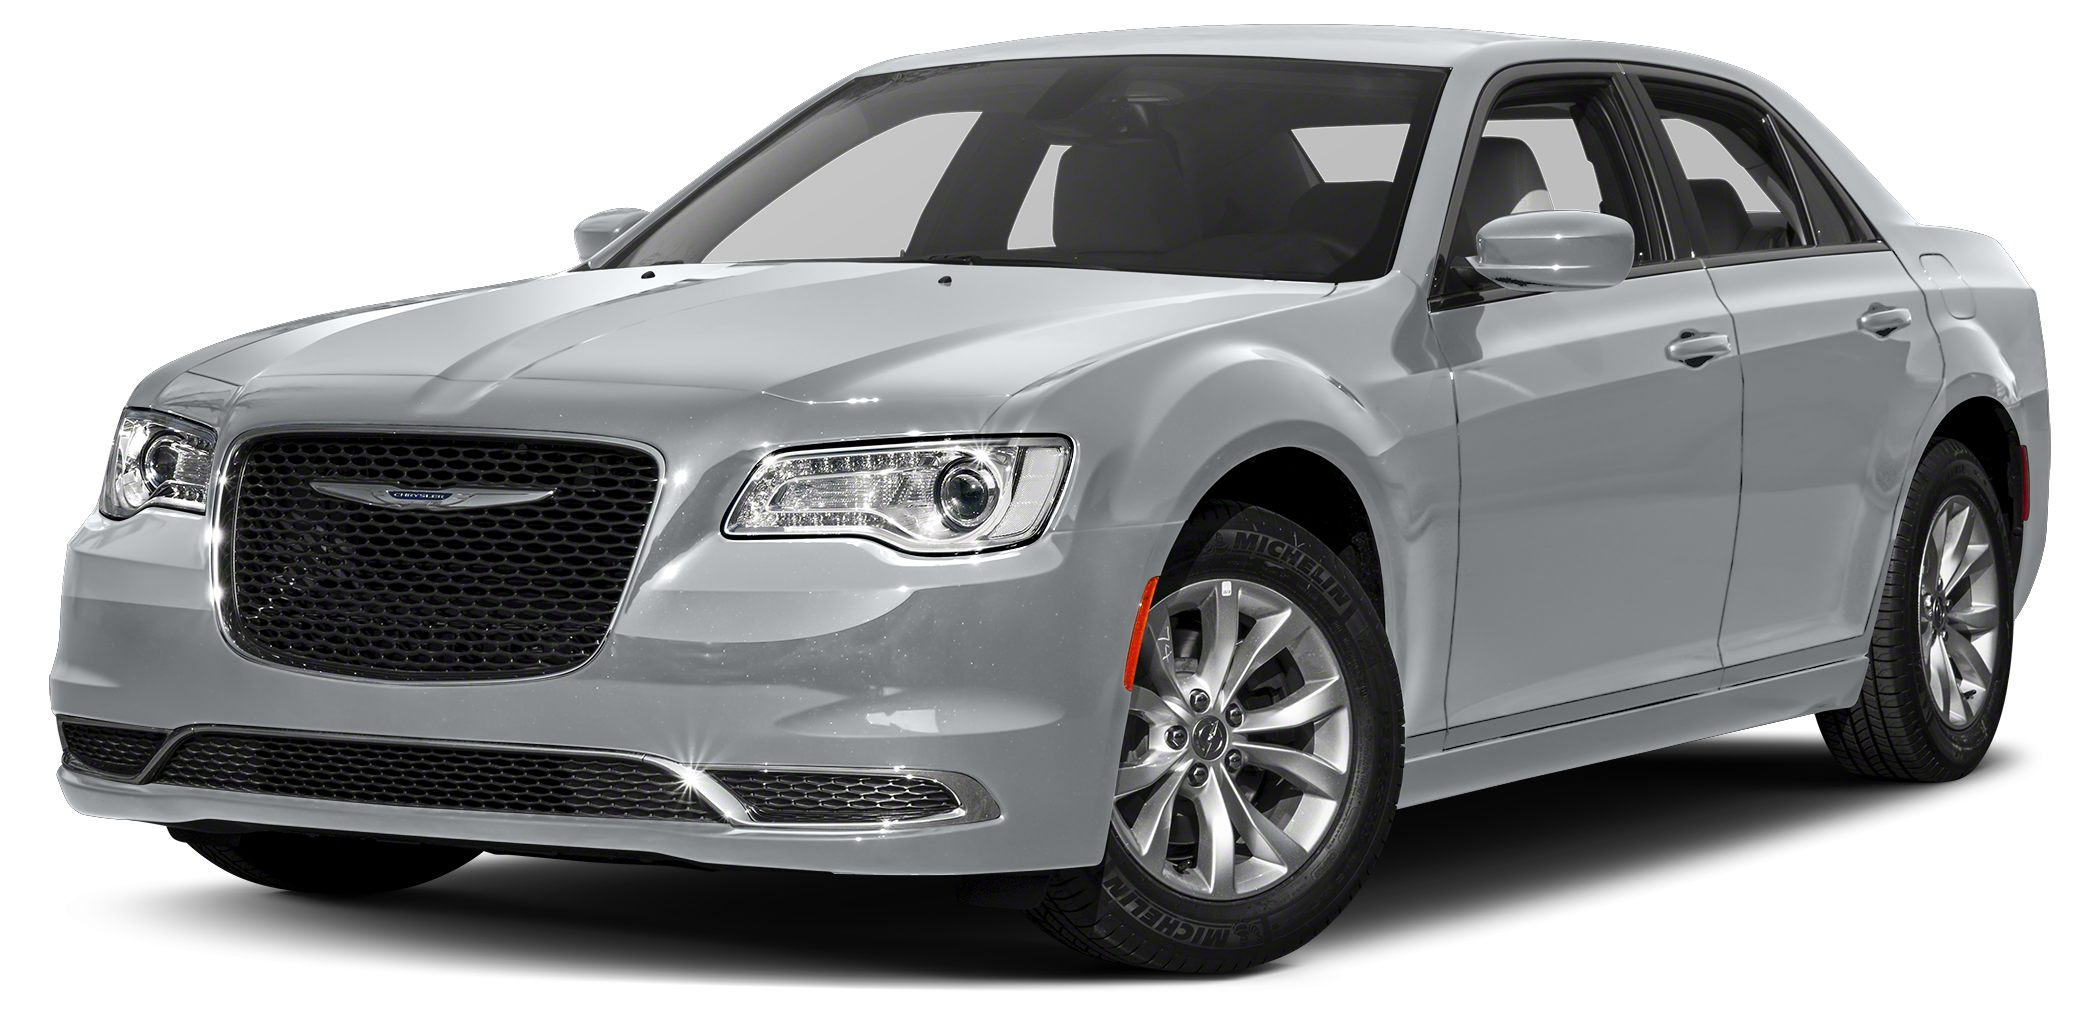 2015 Chrysler 300 S Satellite radio digital odometer and traction control add incredible luxury